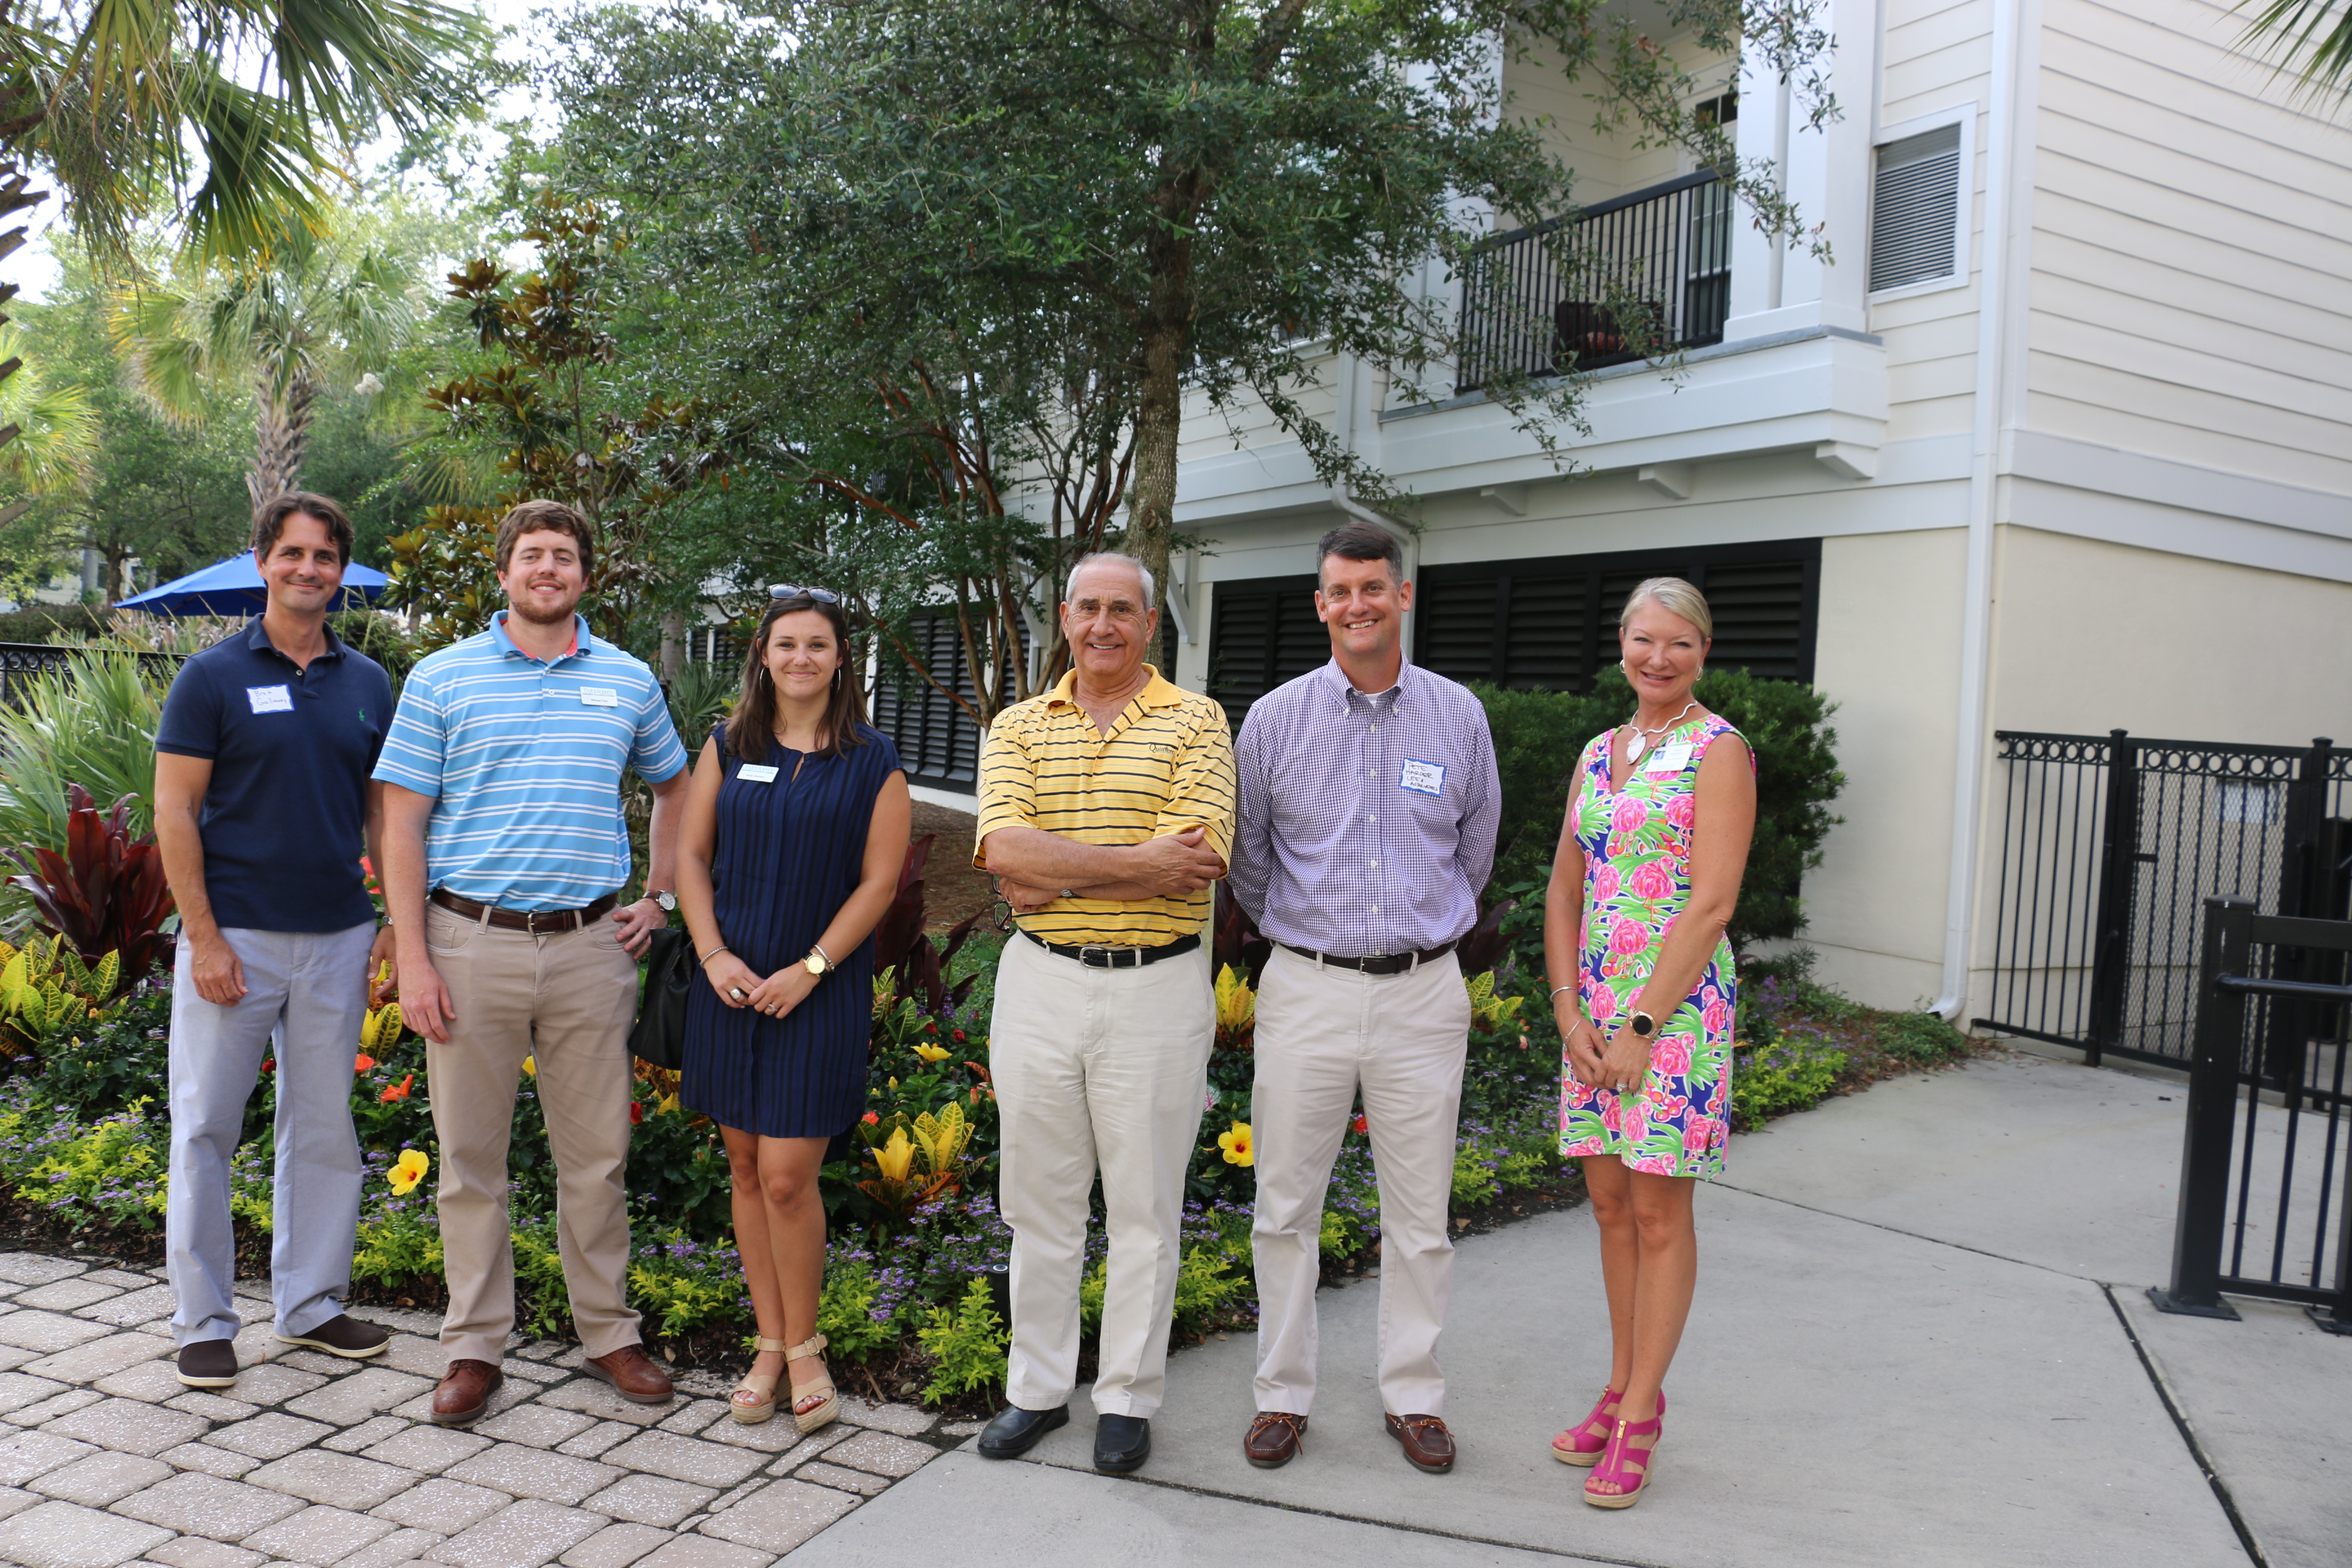 Meet the June Block Party sponsors: Bret Galloway of Salle Galloway, Michael Dew and Molly Graham of Taylor Agency, DIBA president Chuck Lattif, DIBA membership chair Pete Harper, and Dina Mewett, Director of Sales and Marketing at Summit Place.